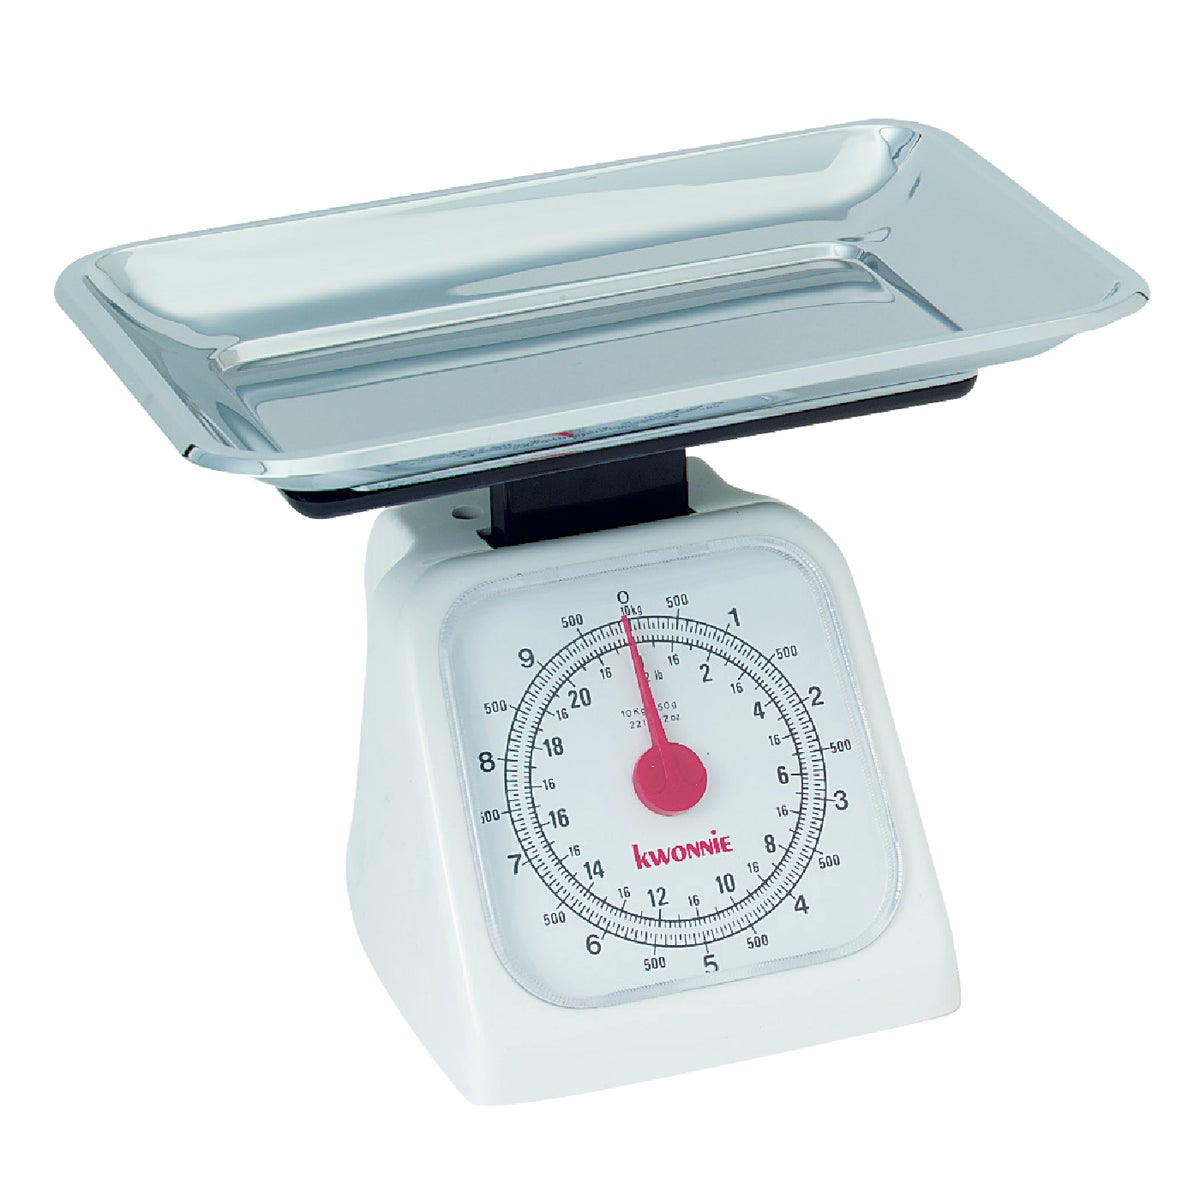 22LB FOOD SCALE - 8625 by Norpro